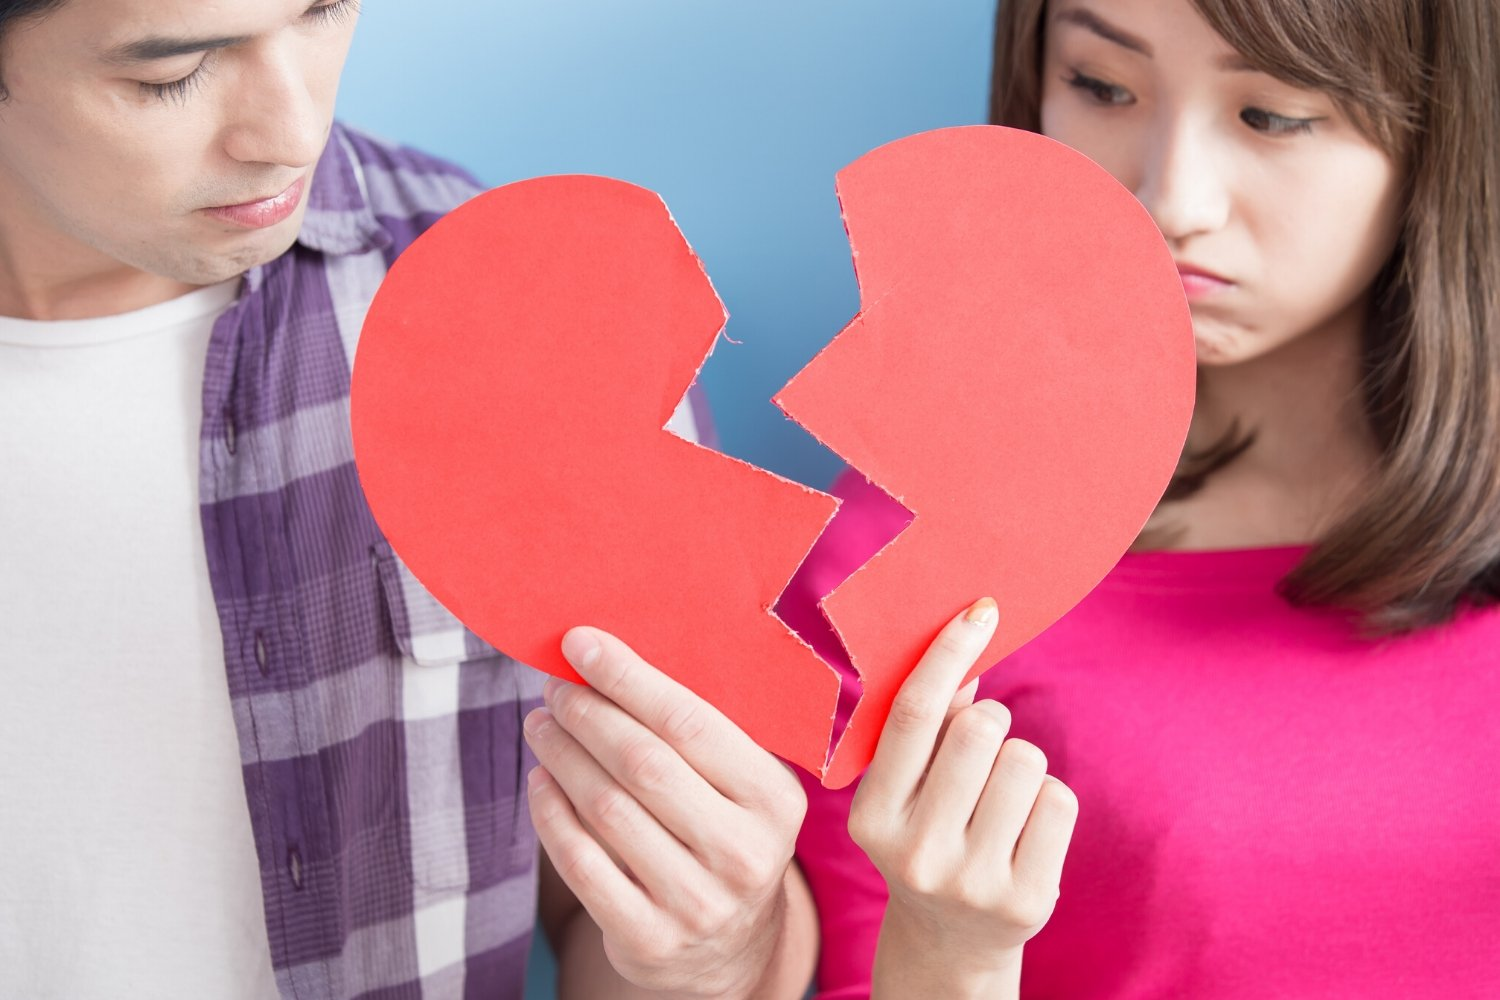 How to Fix a Relationship That's Falling Apart